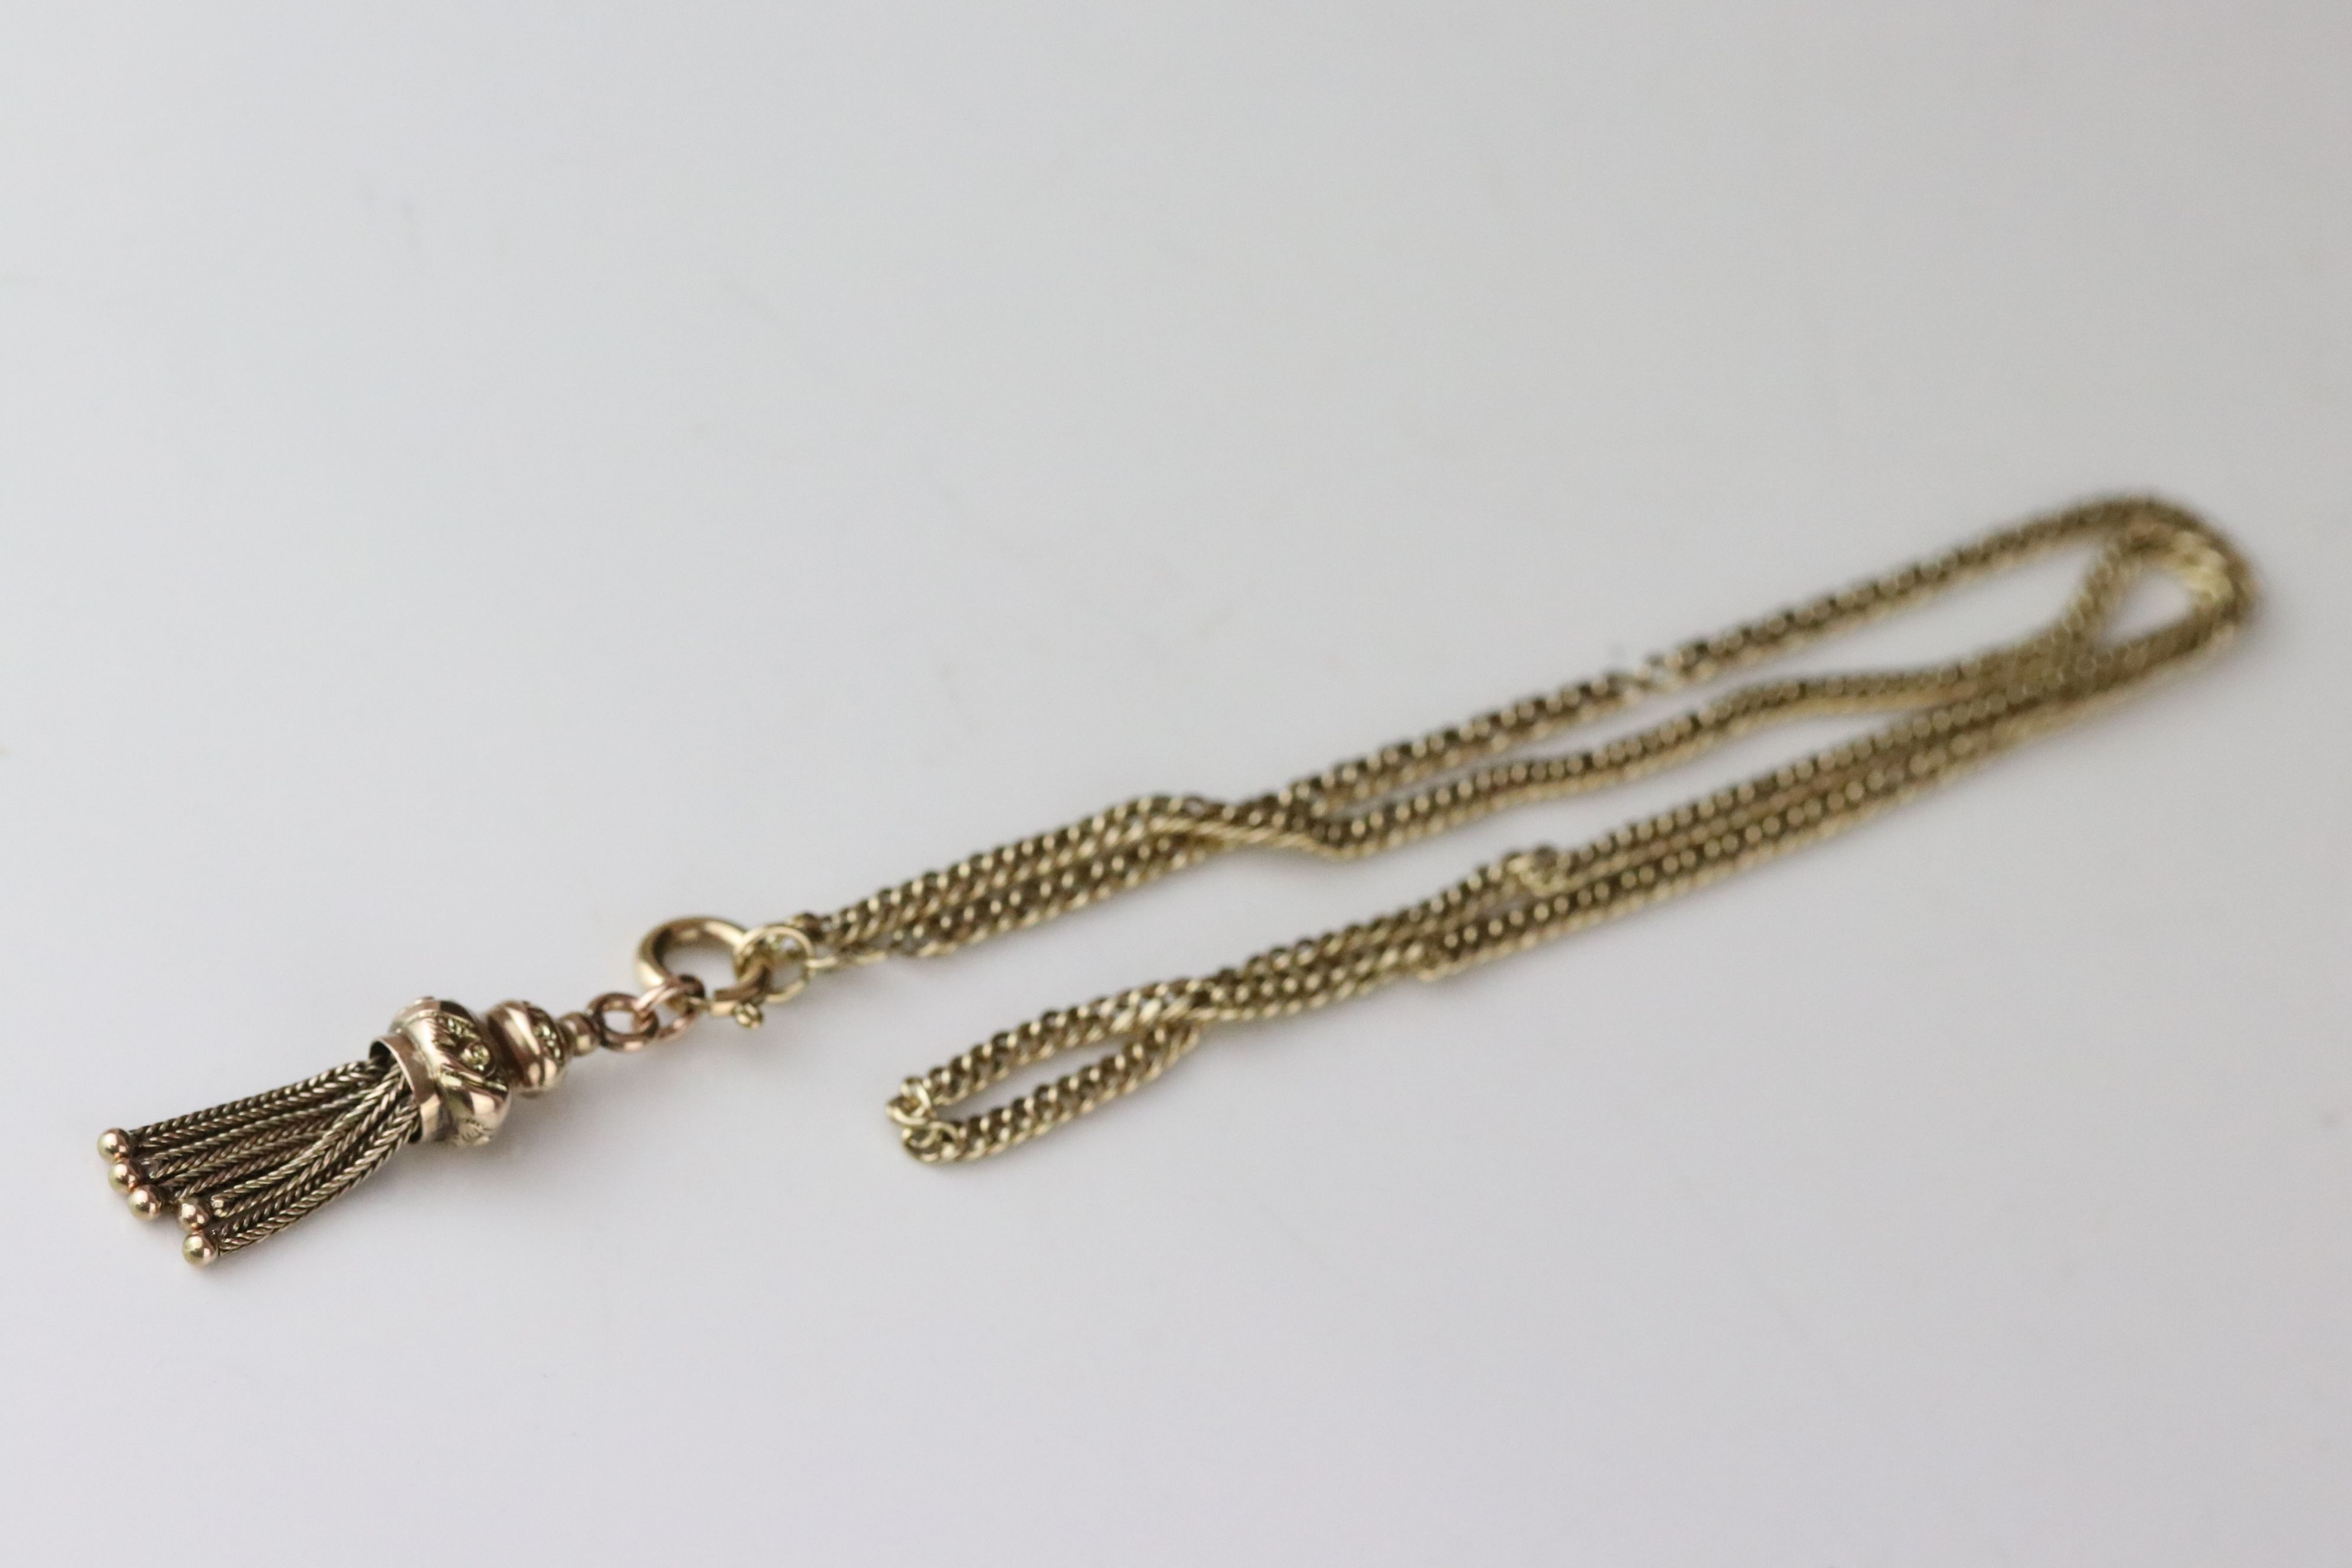 9ct gold chain with earlier tassel fob, length approx 49cm